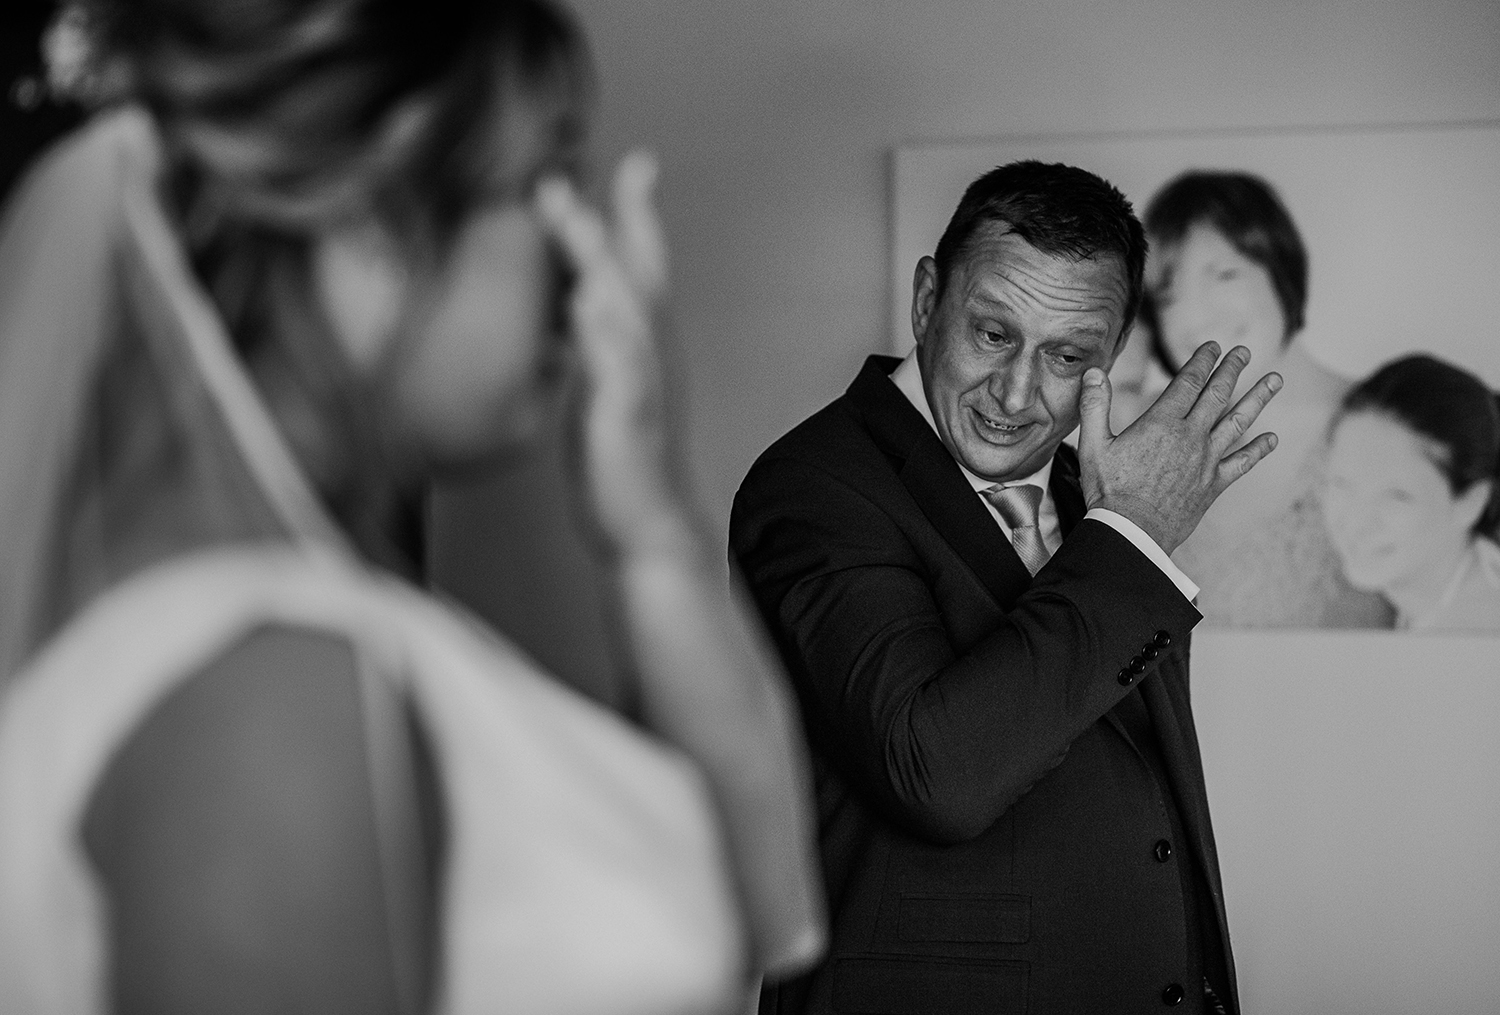 bride and her father wiping tears. BW photo